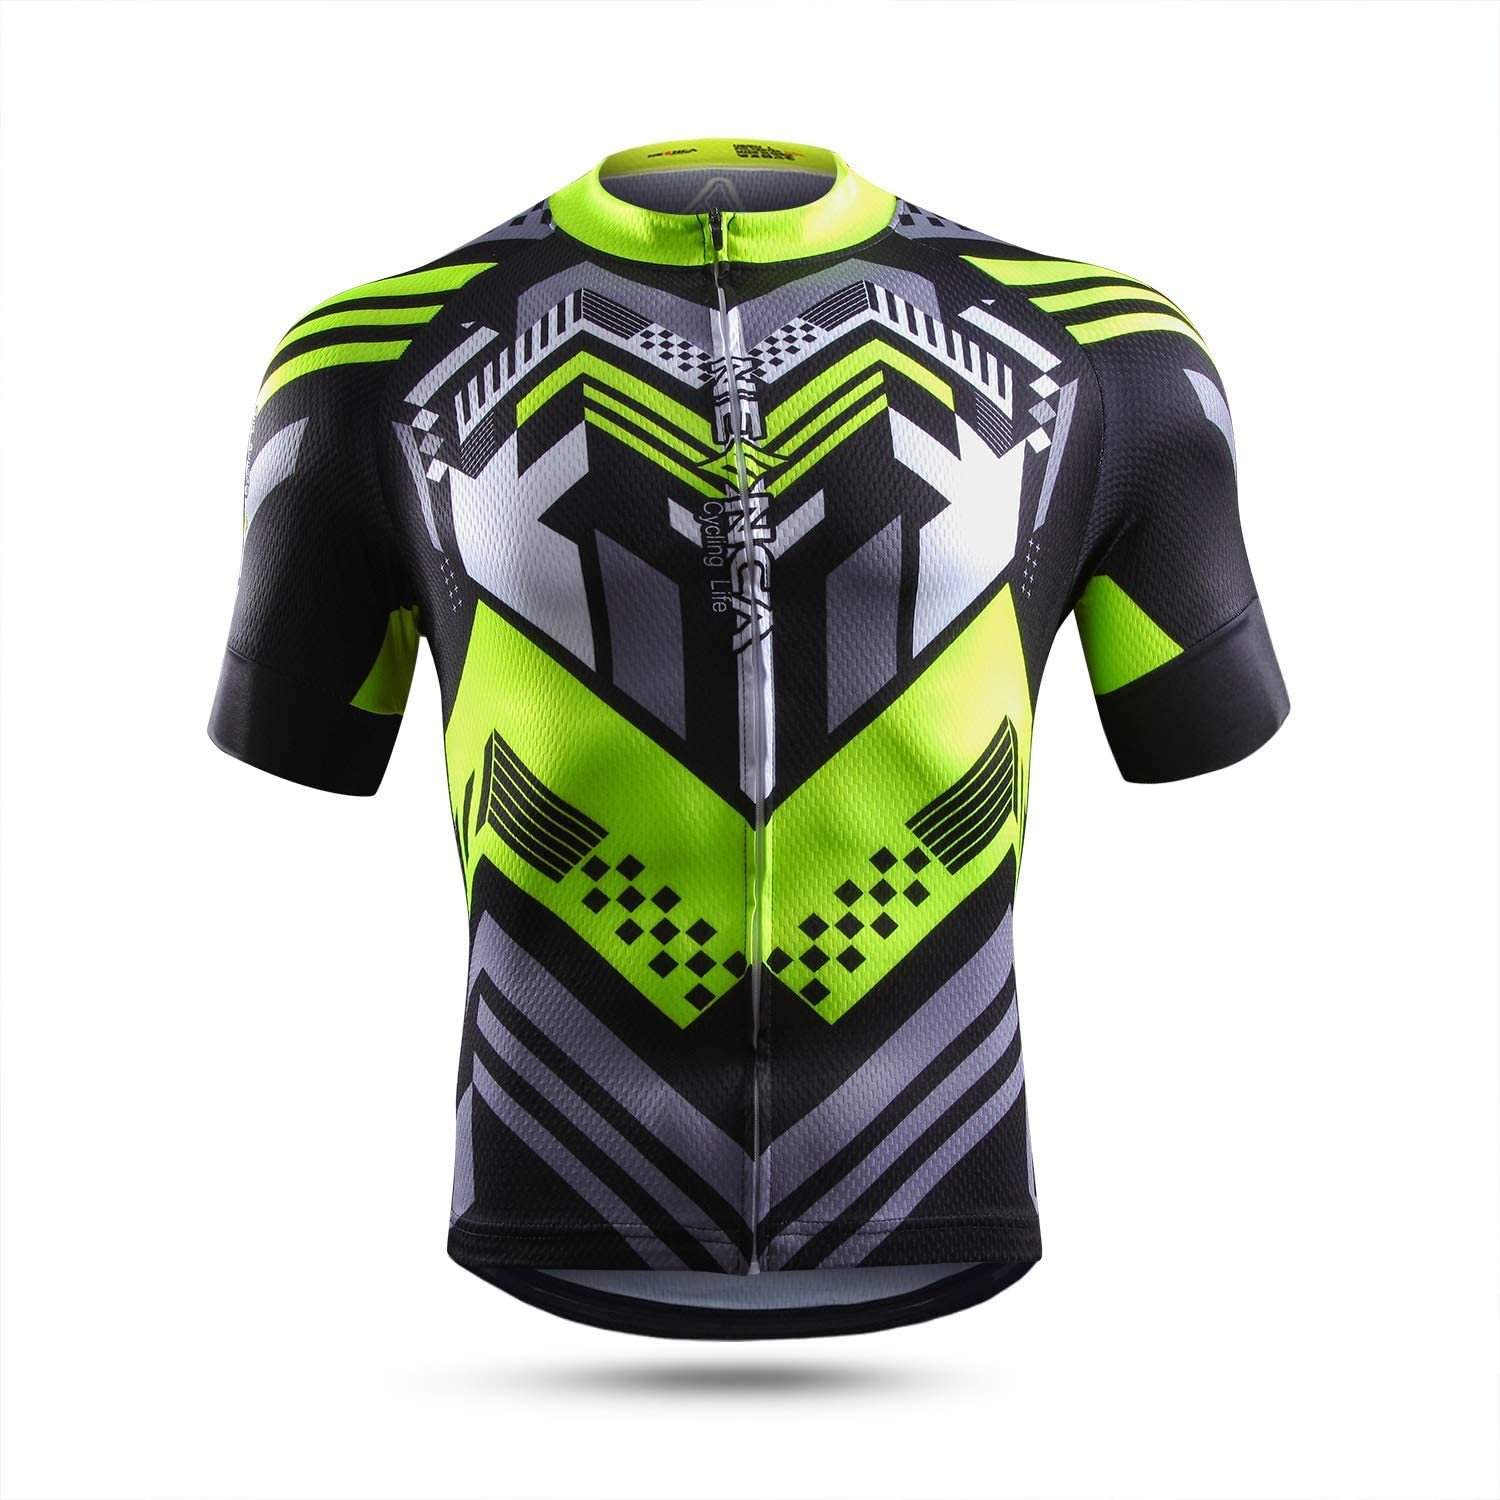 NEENCA Men's Cycling Bike Jersey New products, world's highest quality popular! Short P Long Rear Sleeve Excellence with 3